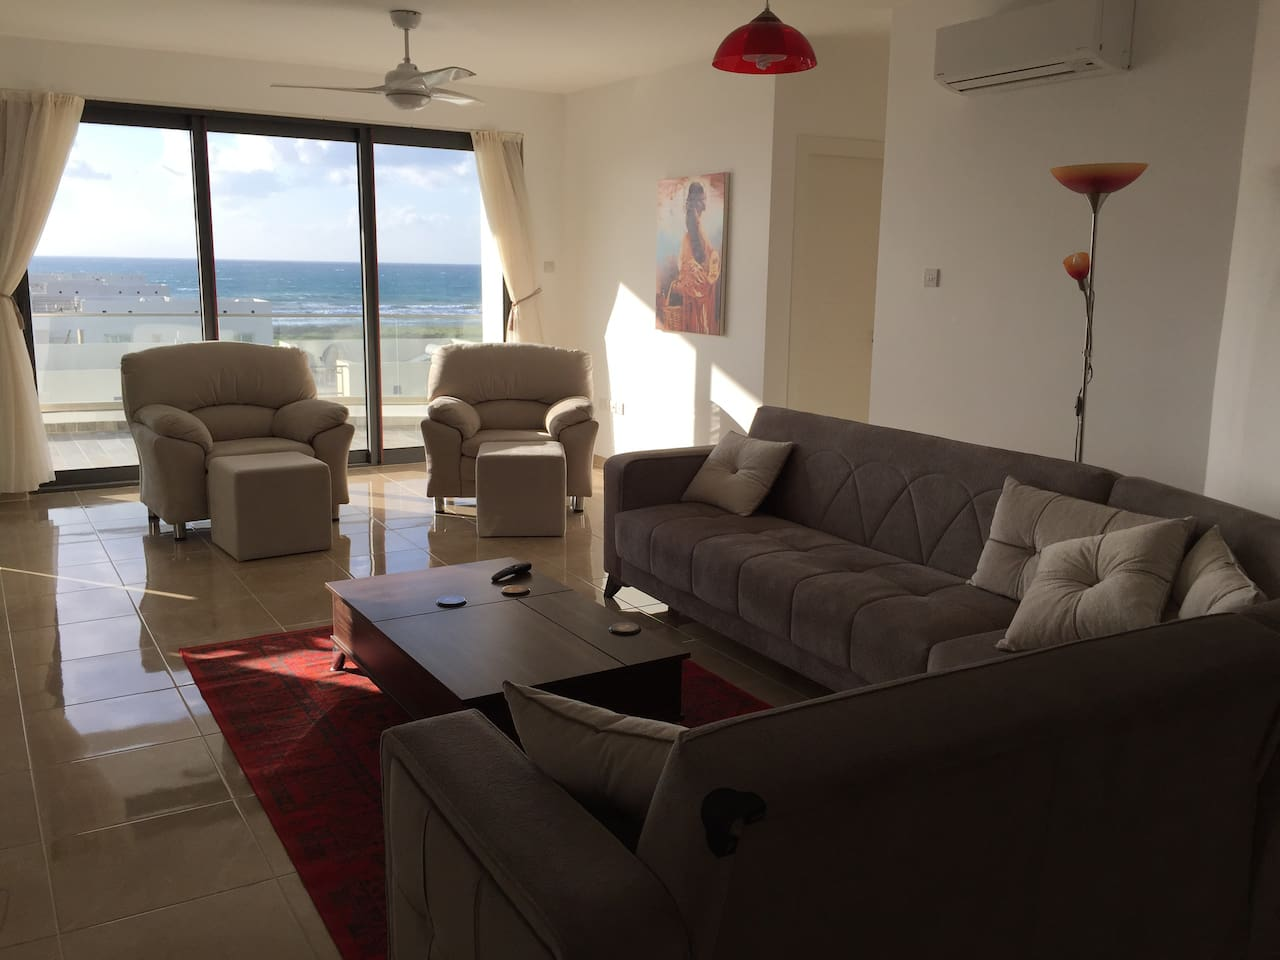 Sitting Room Area with Sea Views